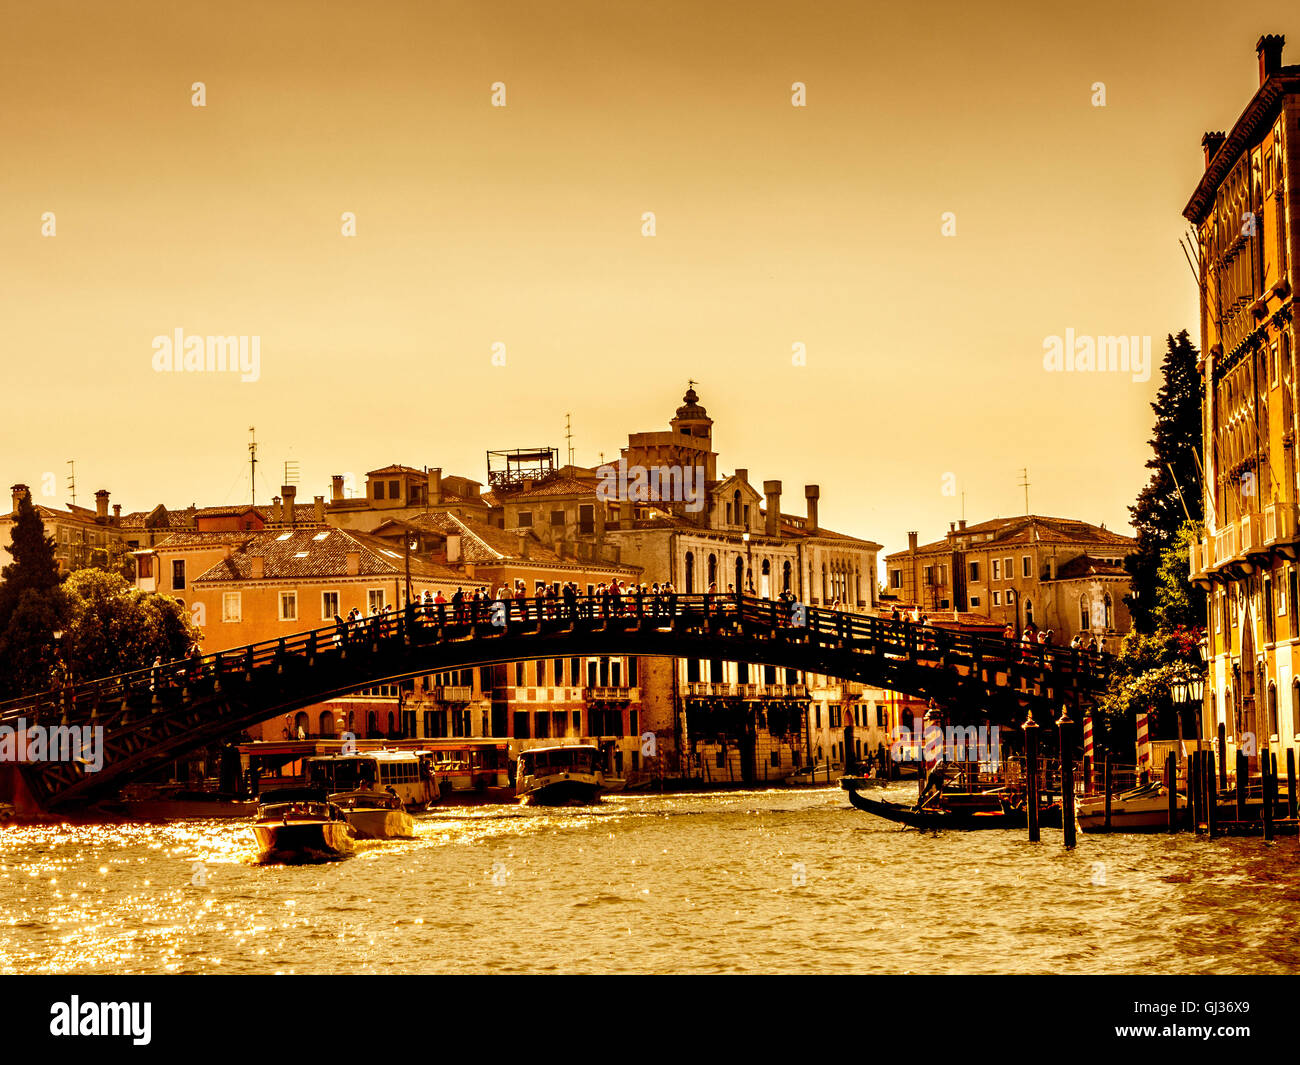 Accademia Bridge and the Grand Canal, Venice Italy, with a golden sky. - Stock Image